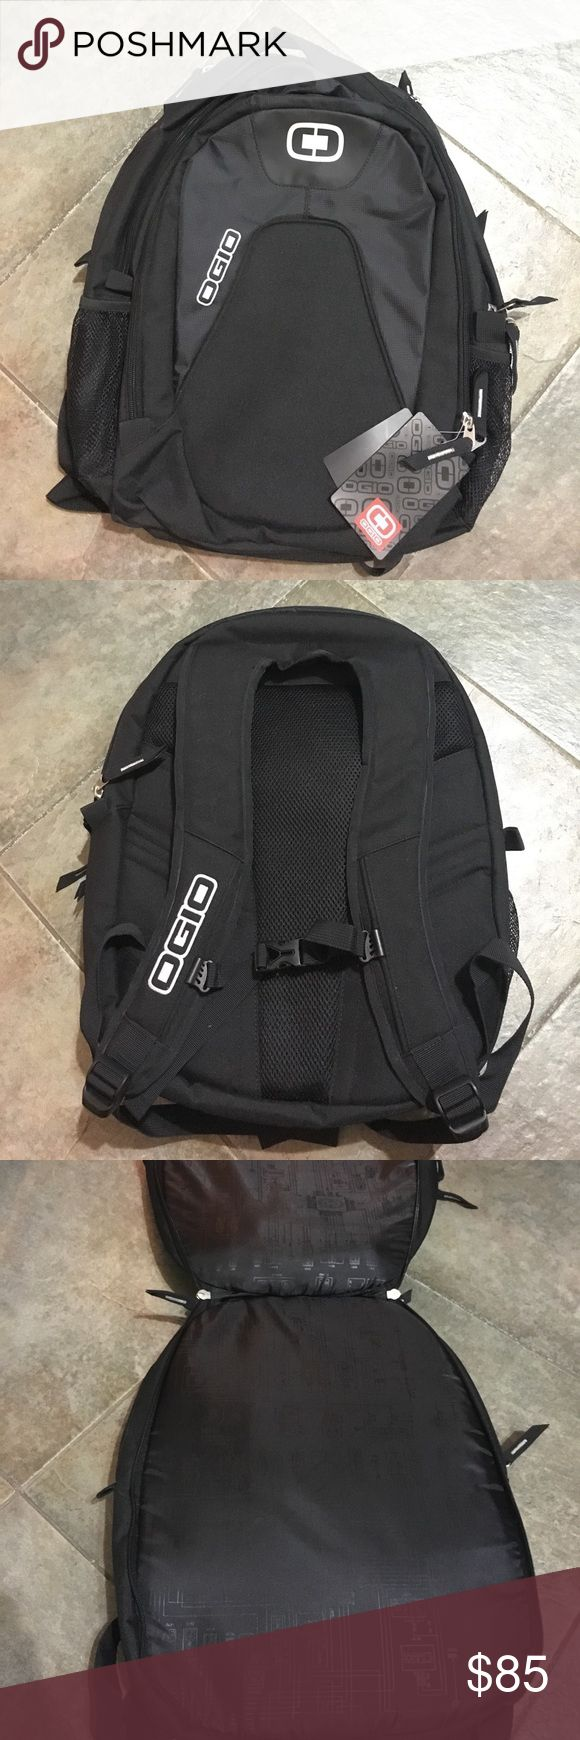 Ogio Travel Backpack Travel with ease and convenience with this Ogio Backpack! **Brand New*** Airport checkpoint friendly laptop compartment. Multiple Organization Pockets and more! ogio Bags Backpacks